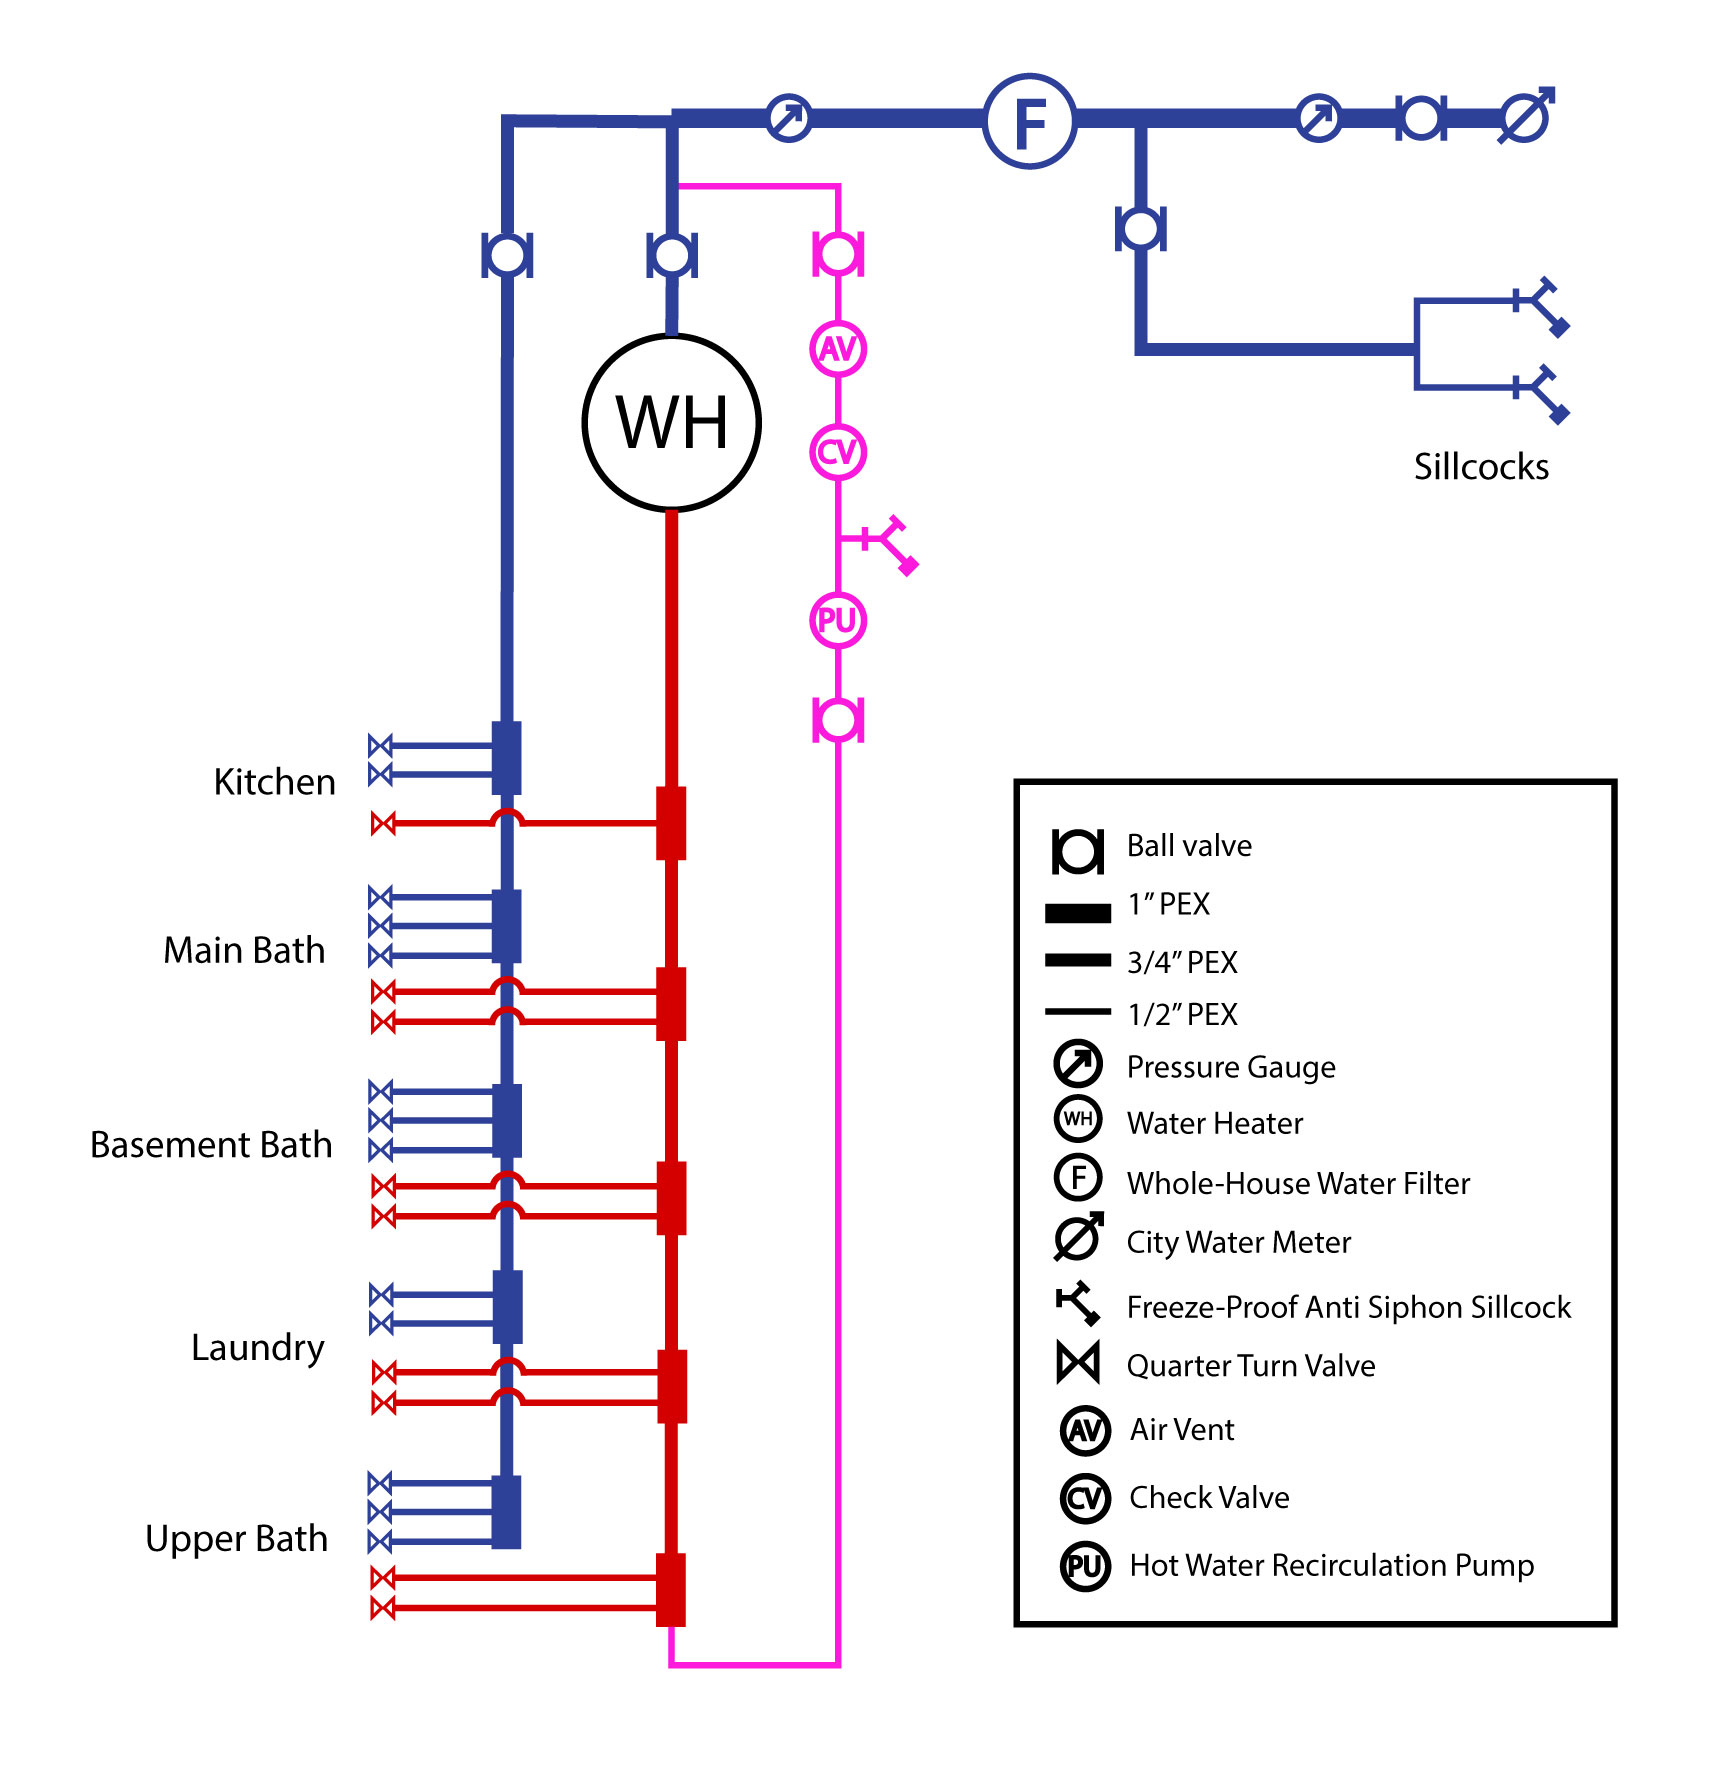 hight resolution of which that brings me wanting to tear everything out and install an uponor logic layout with a dedicated recirc line